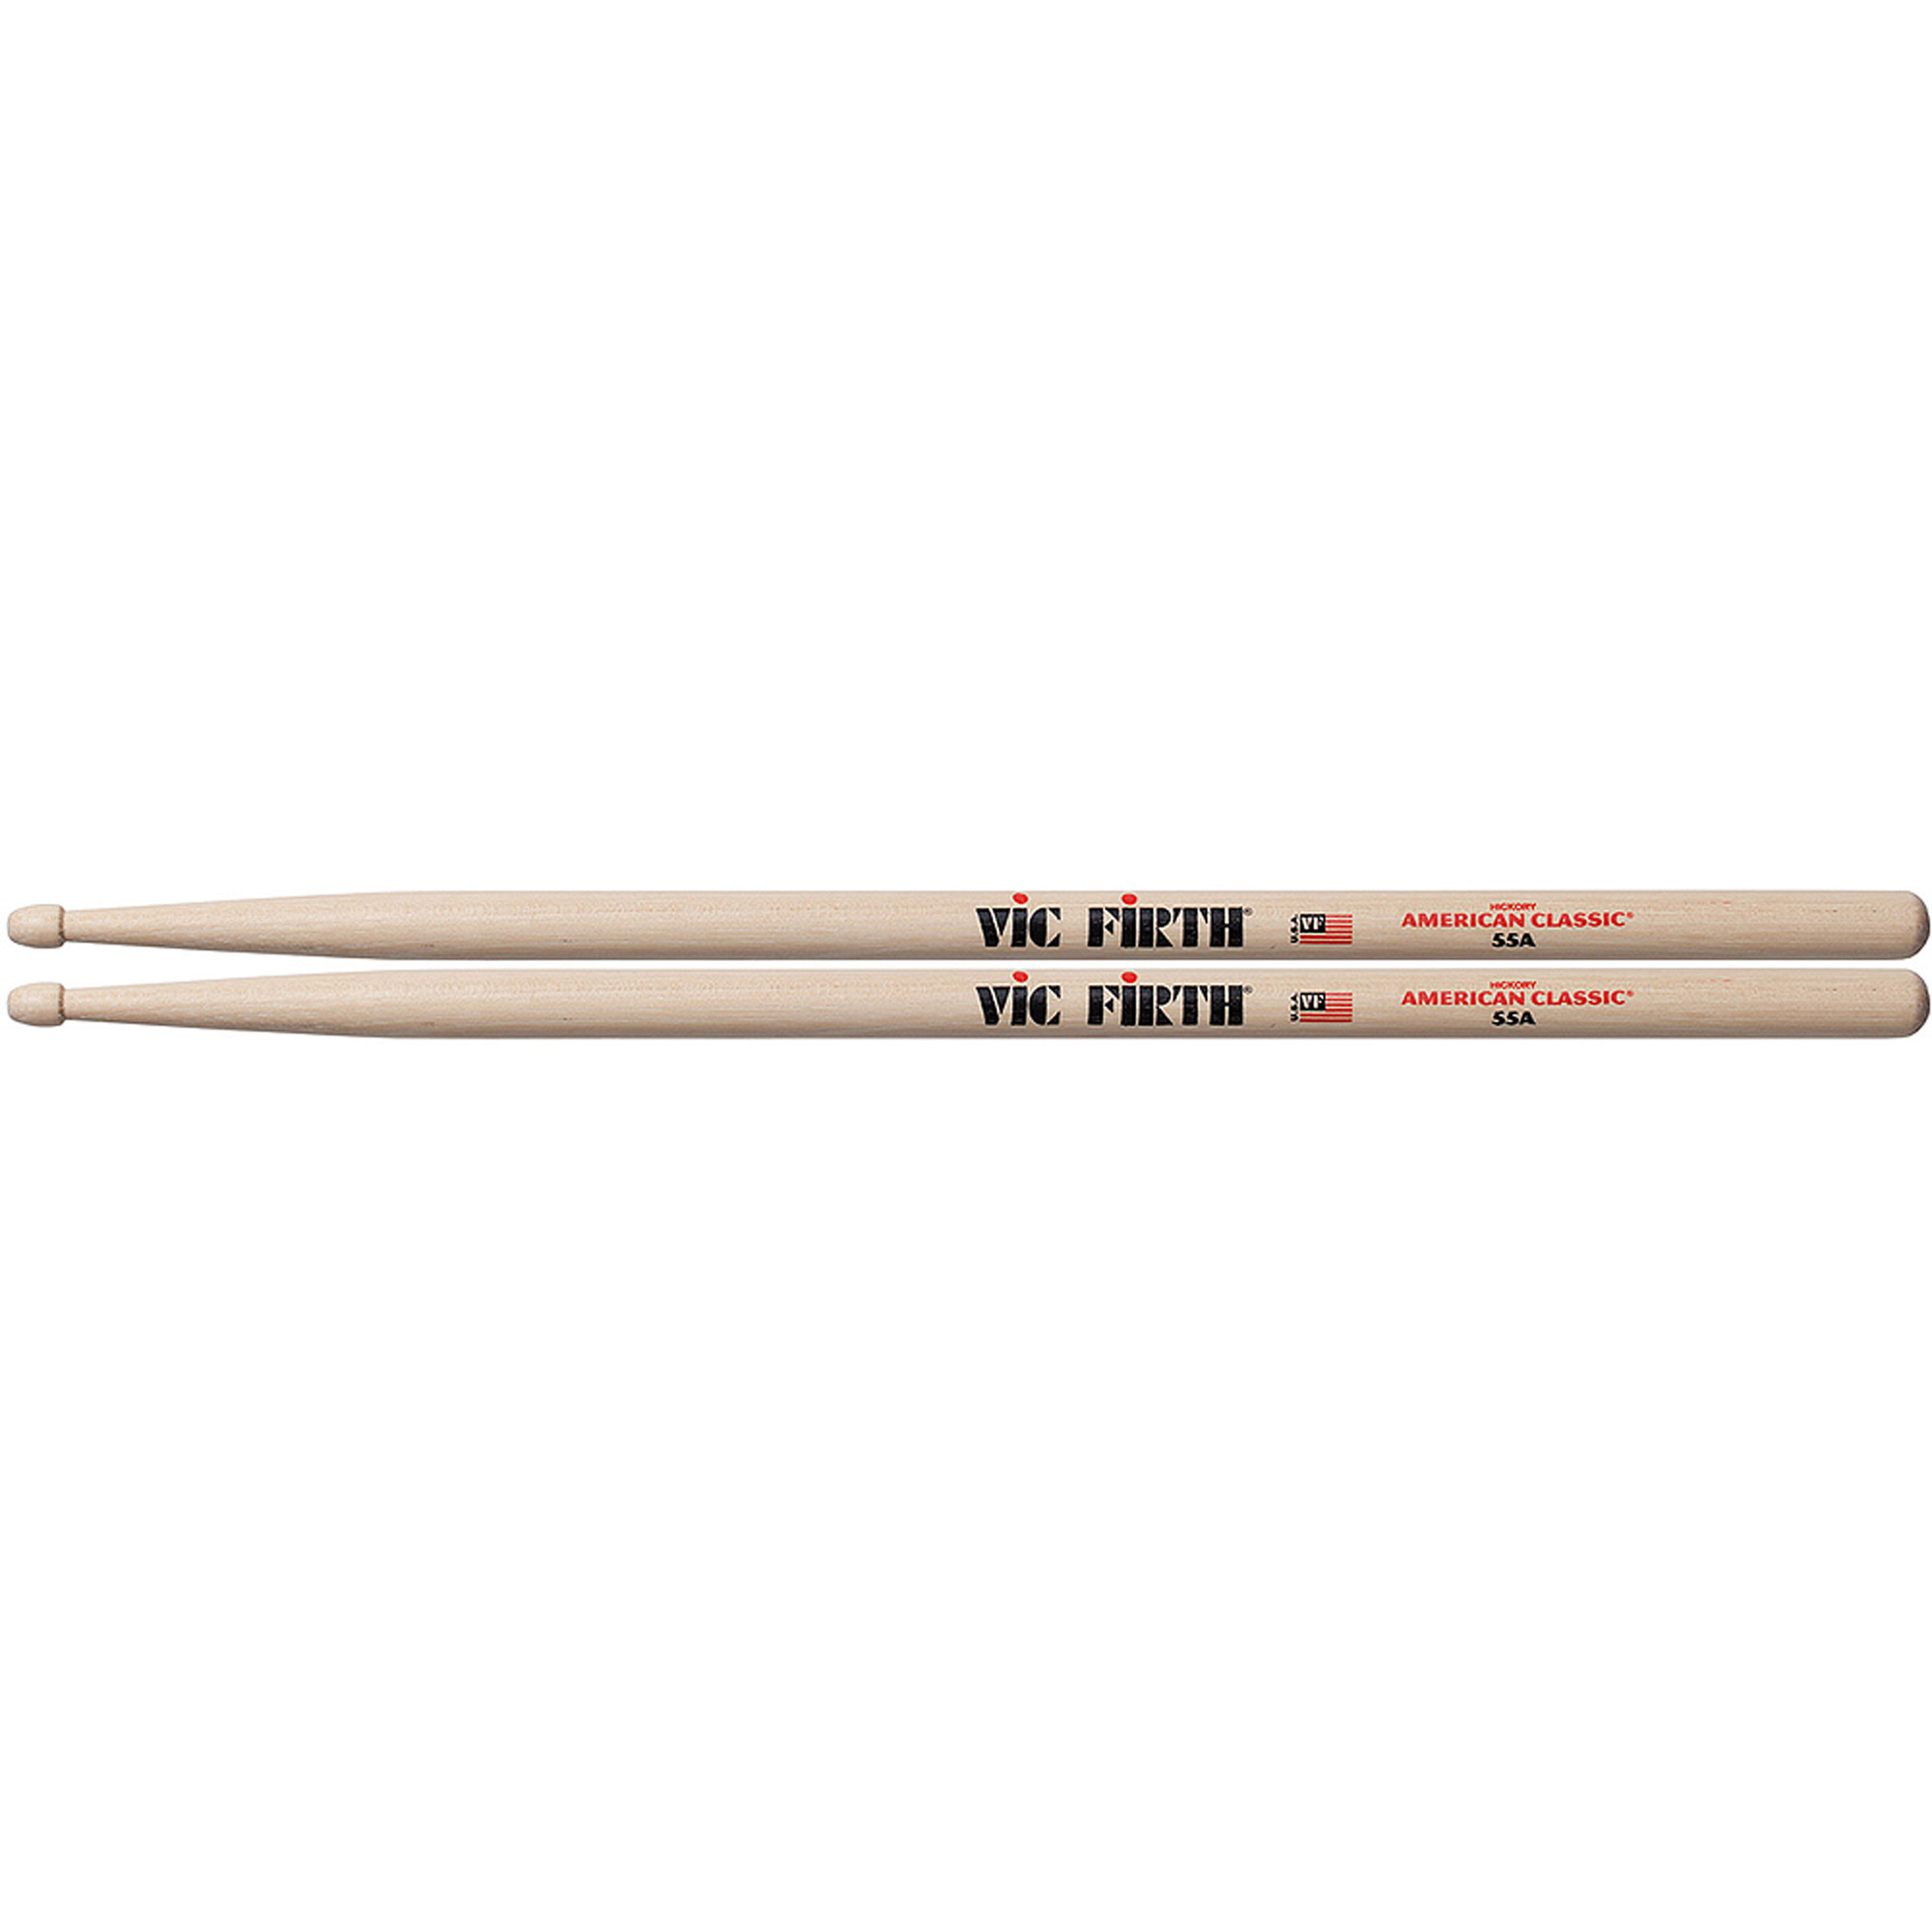 Vic Firth American Classic 55A Wood Tip Hickory Drumsticks by Vic Firth